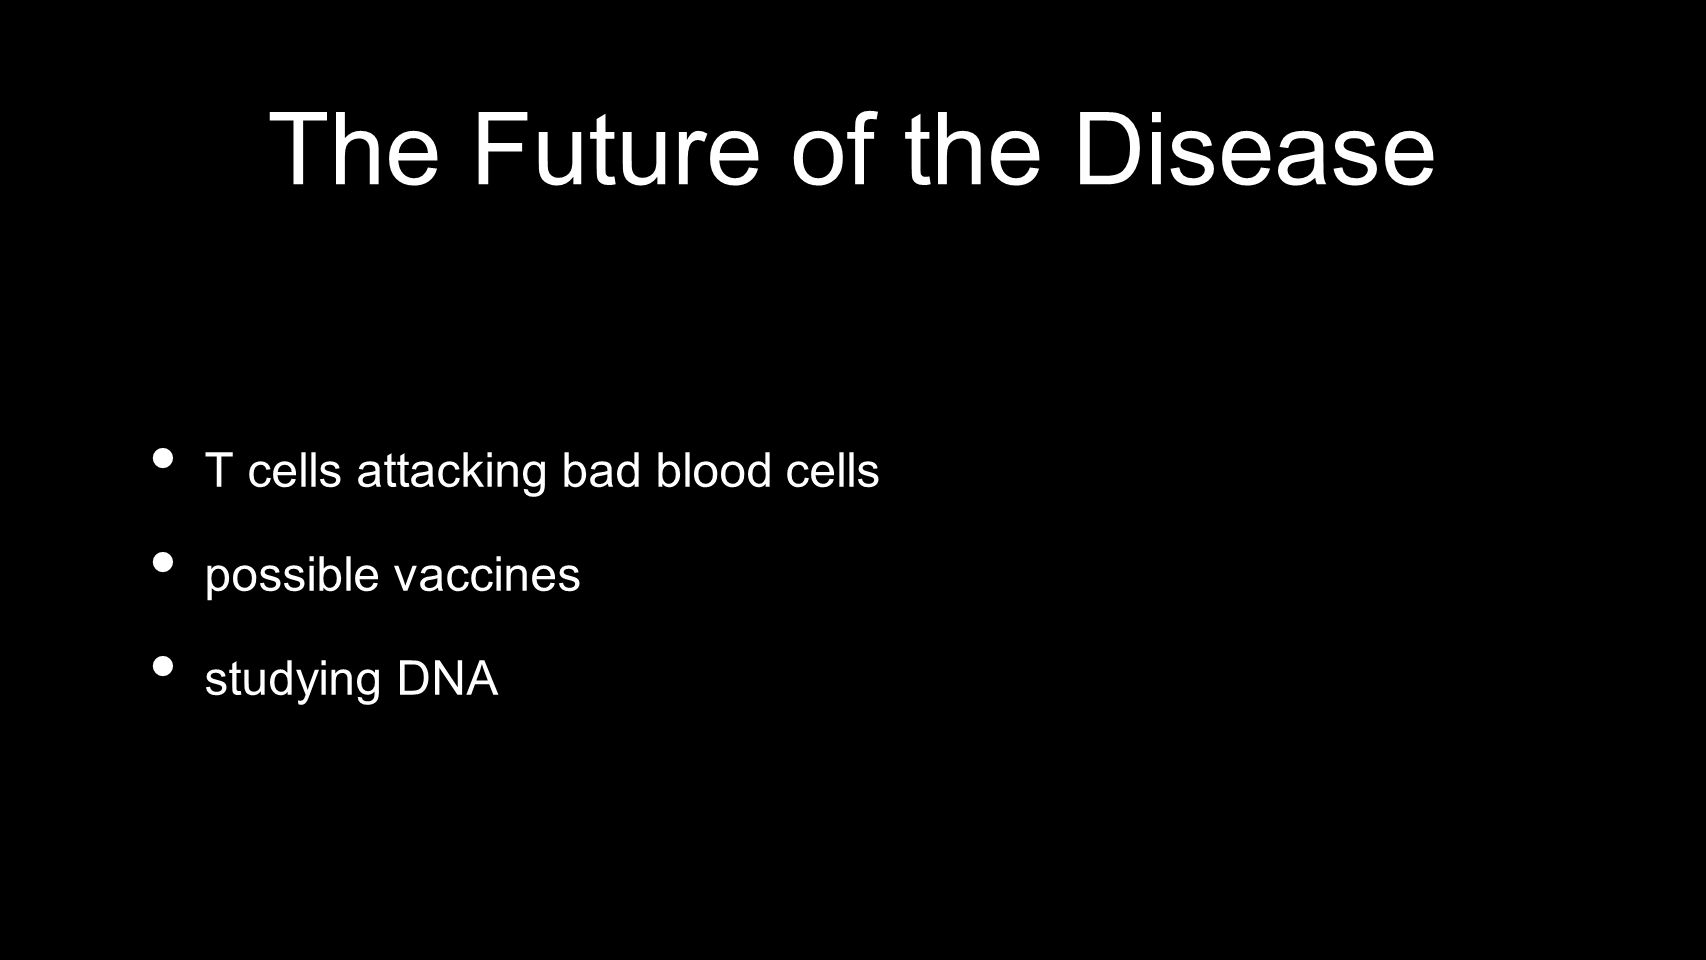 The Future of the Disease